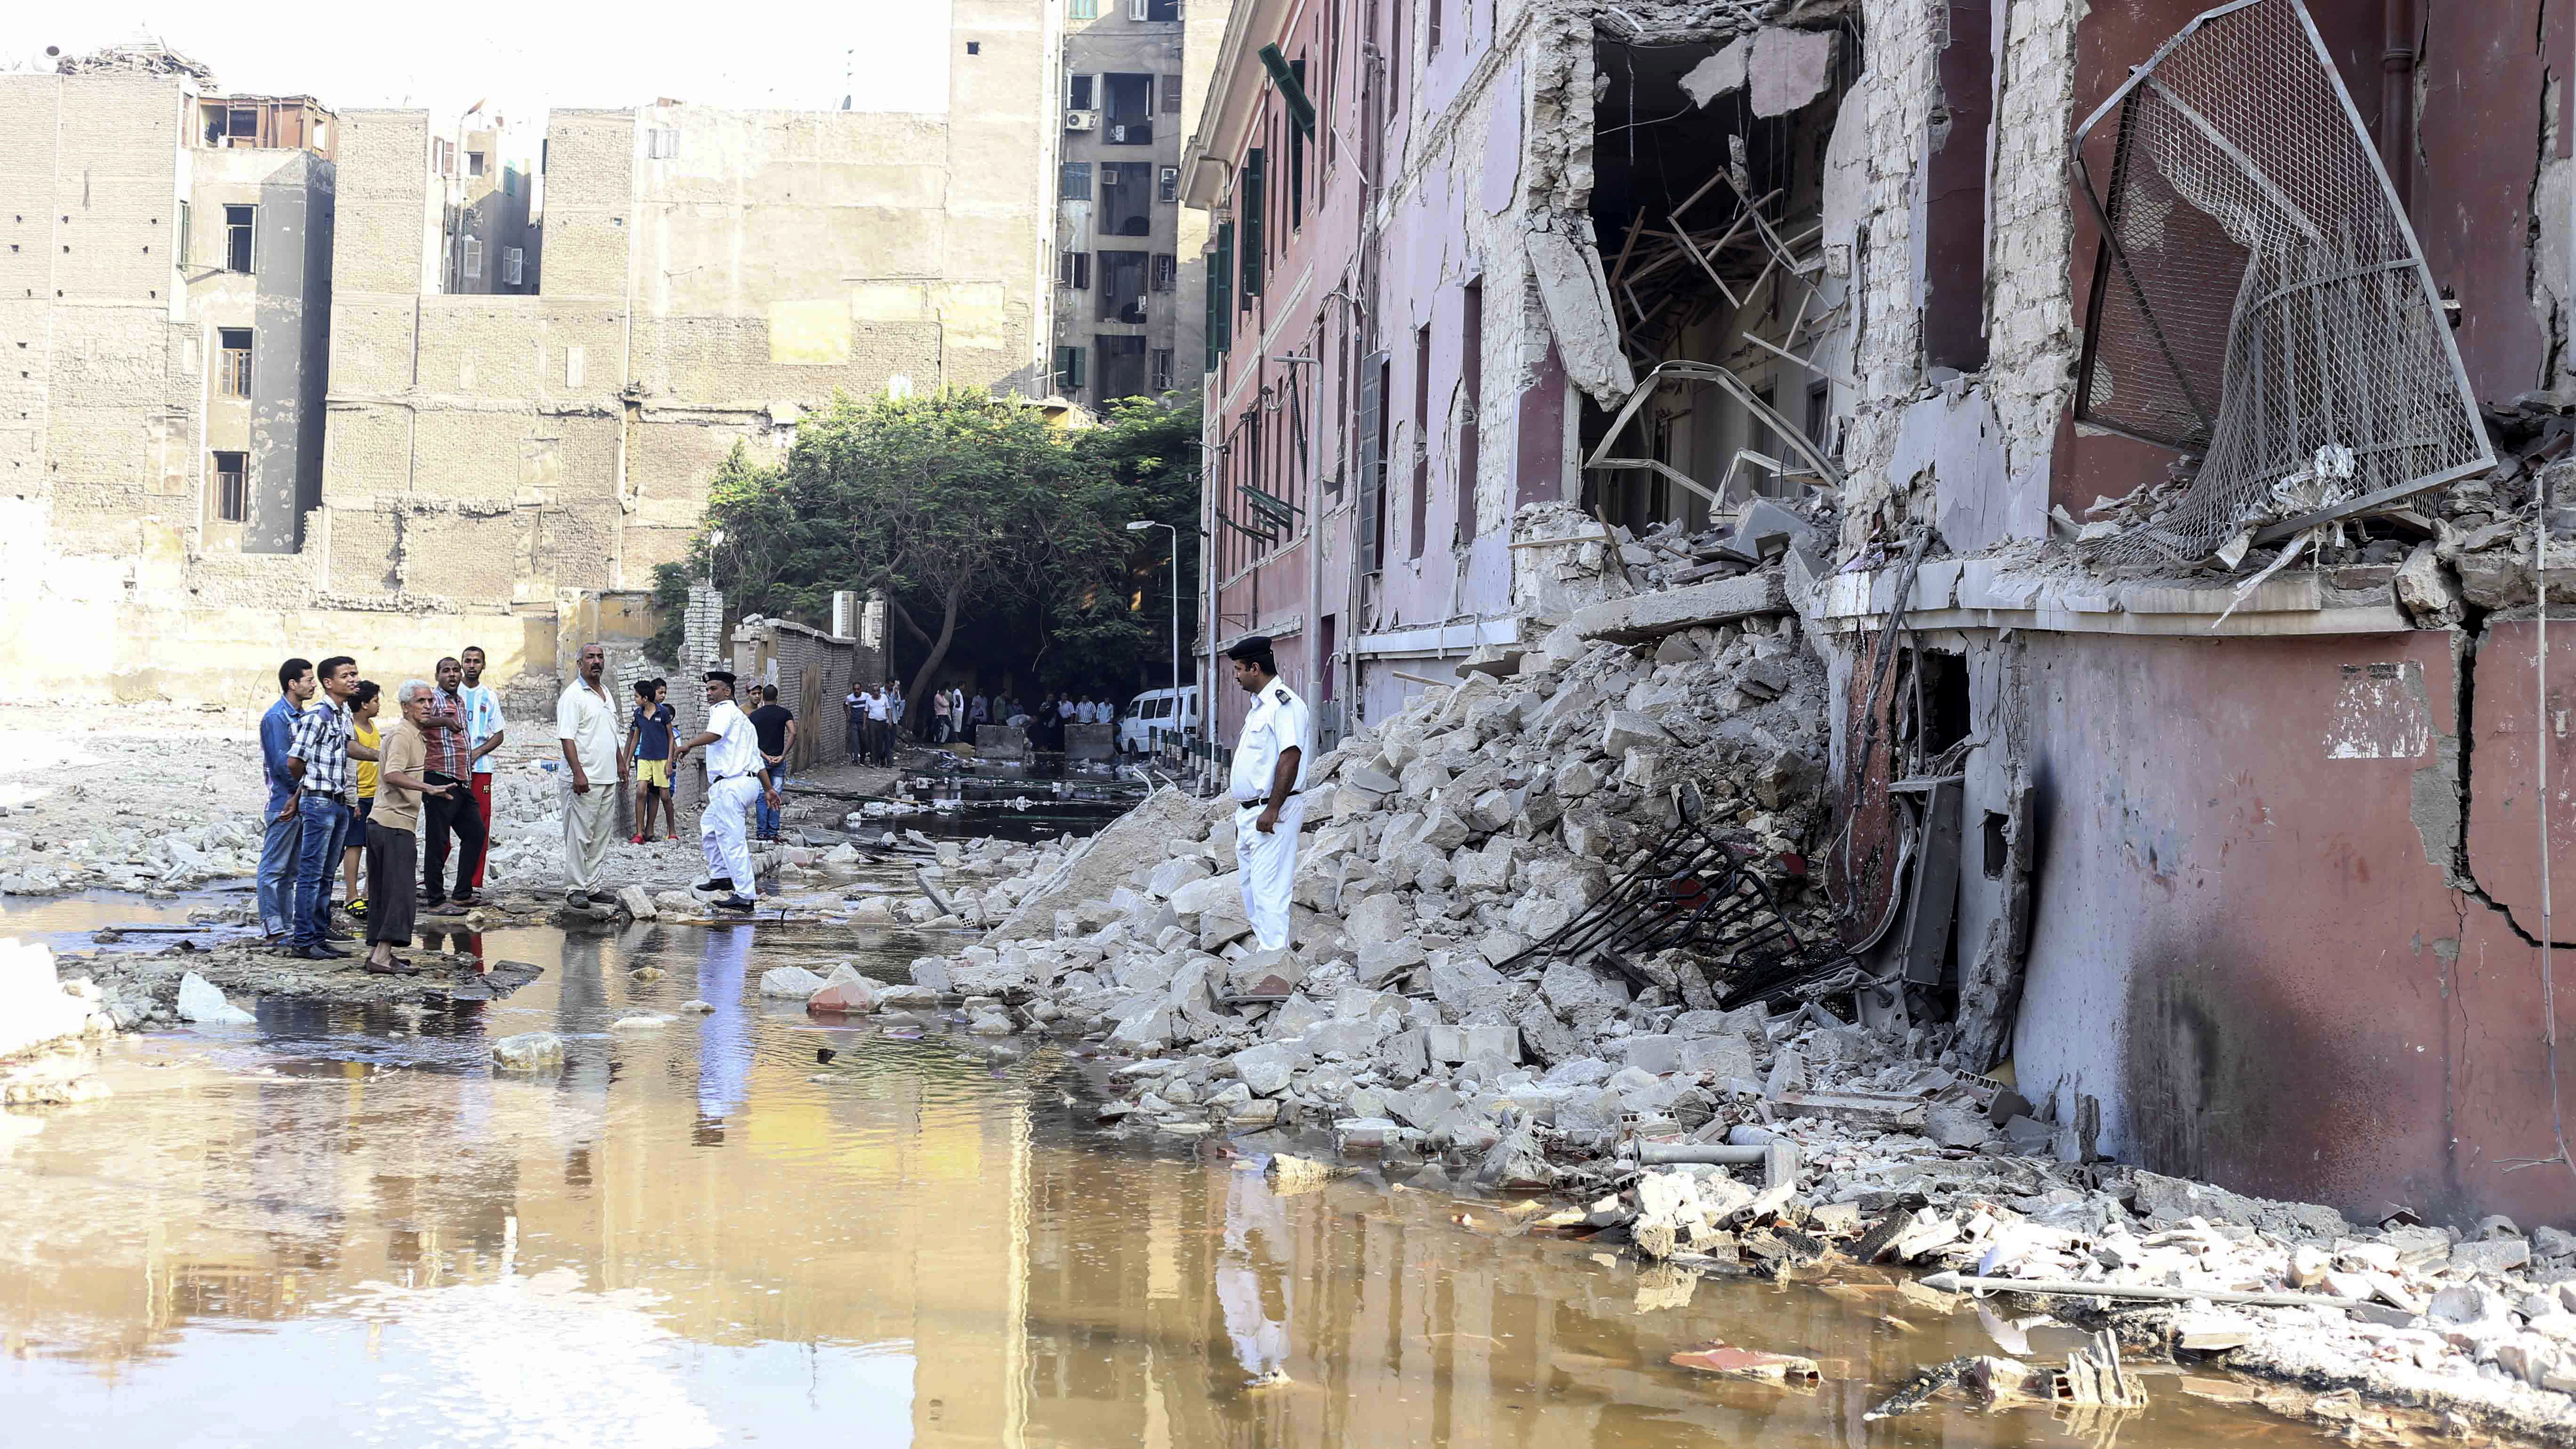 At Least 1 Killed In Blast Outside Italian Consulate In Cairo